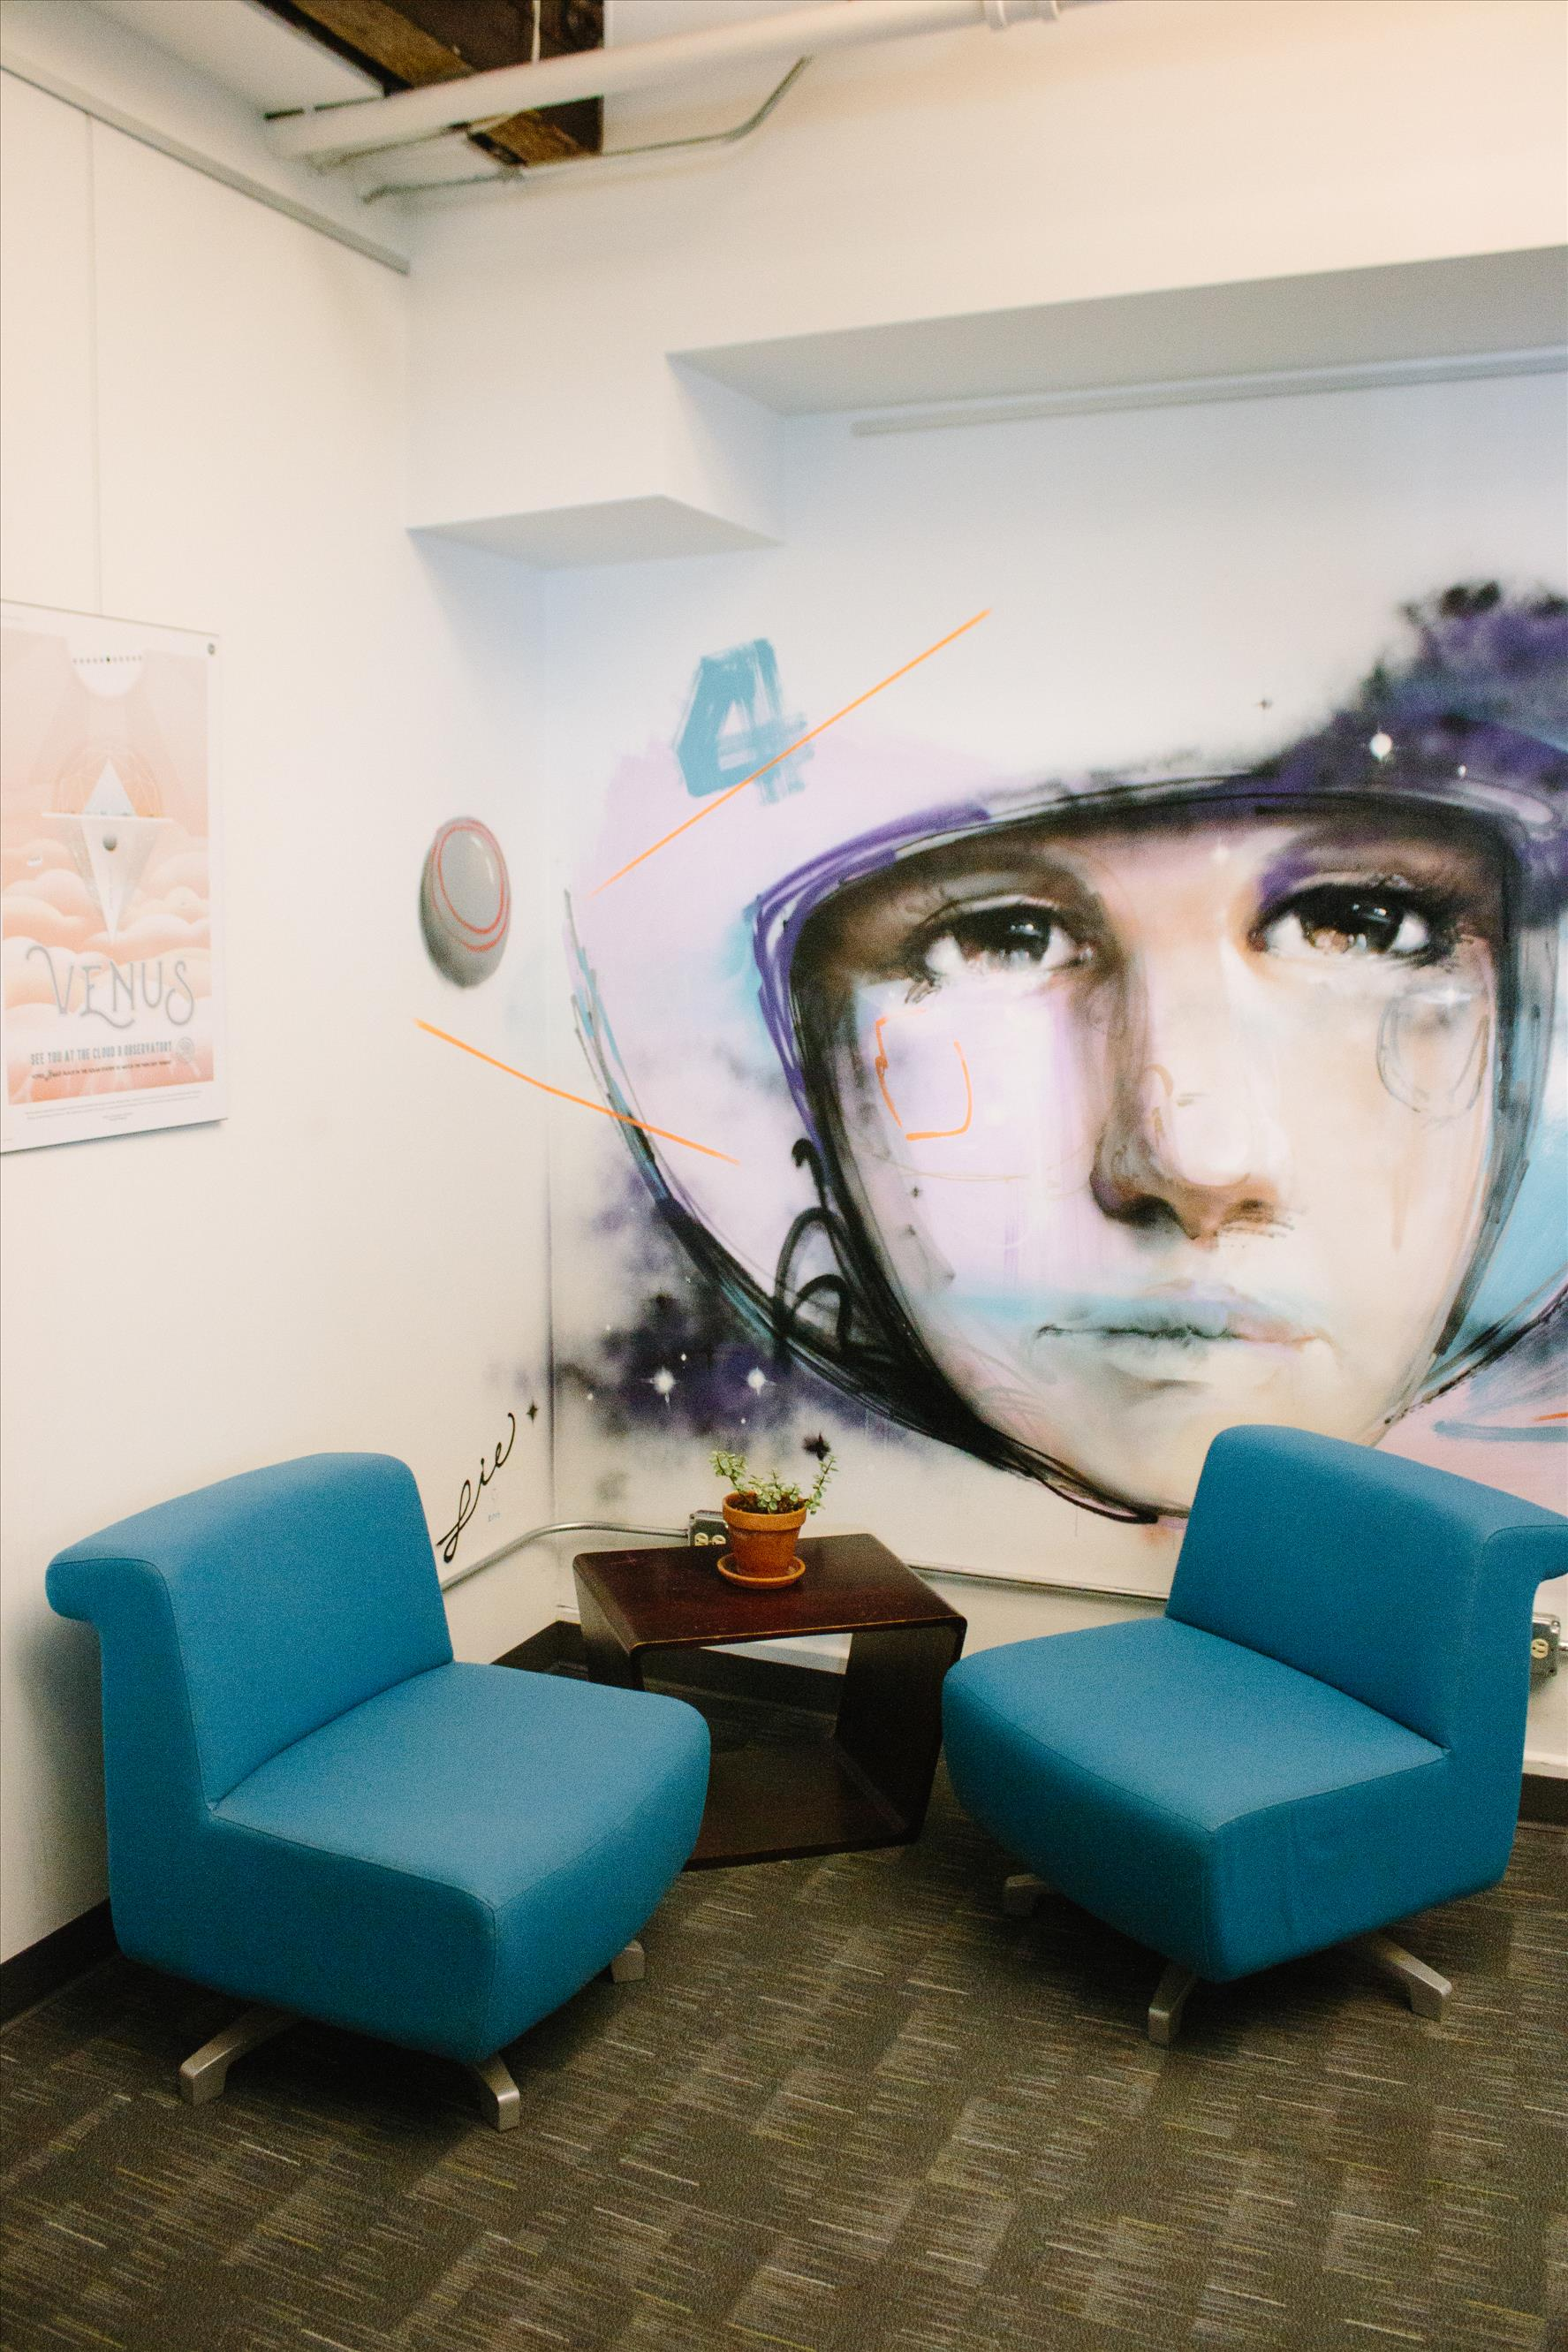 SPACE - Curated by Indiewalls